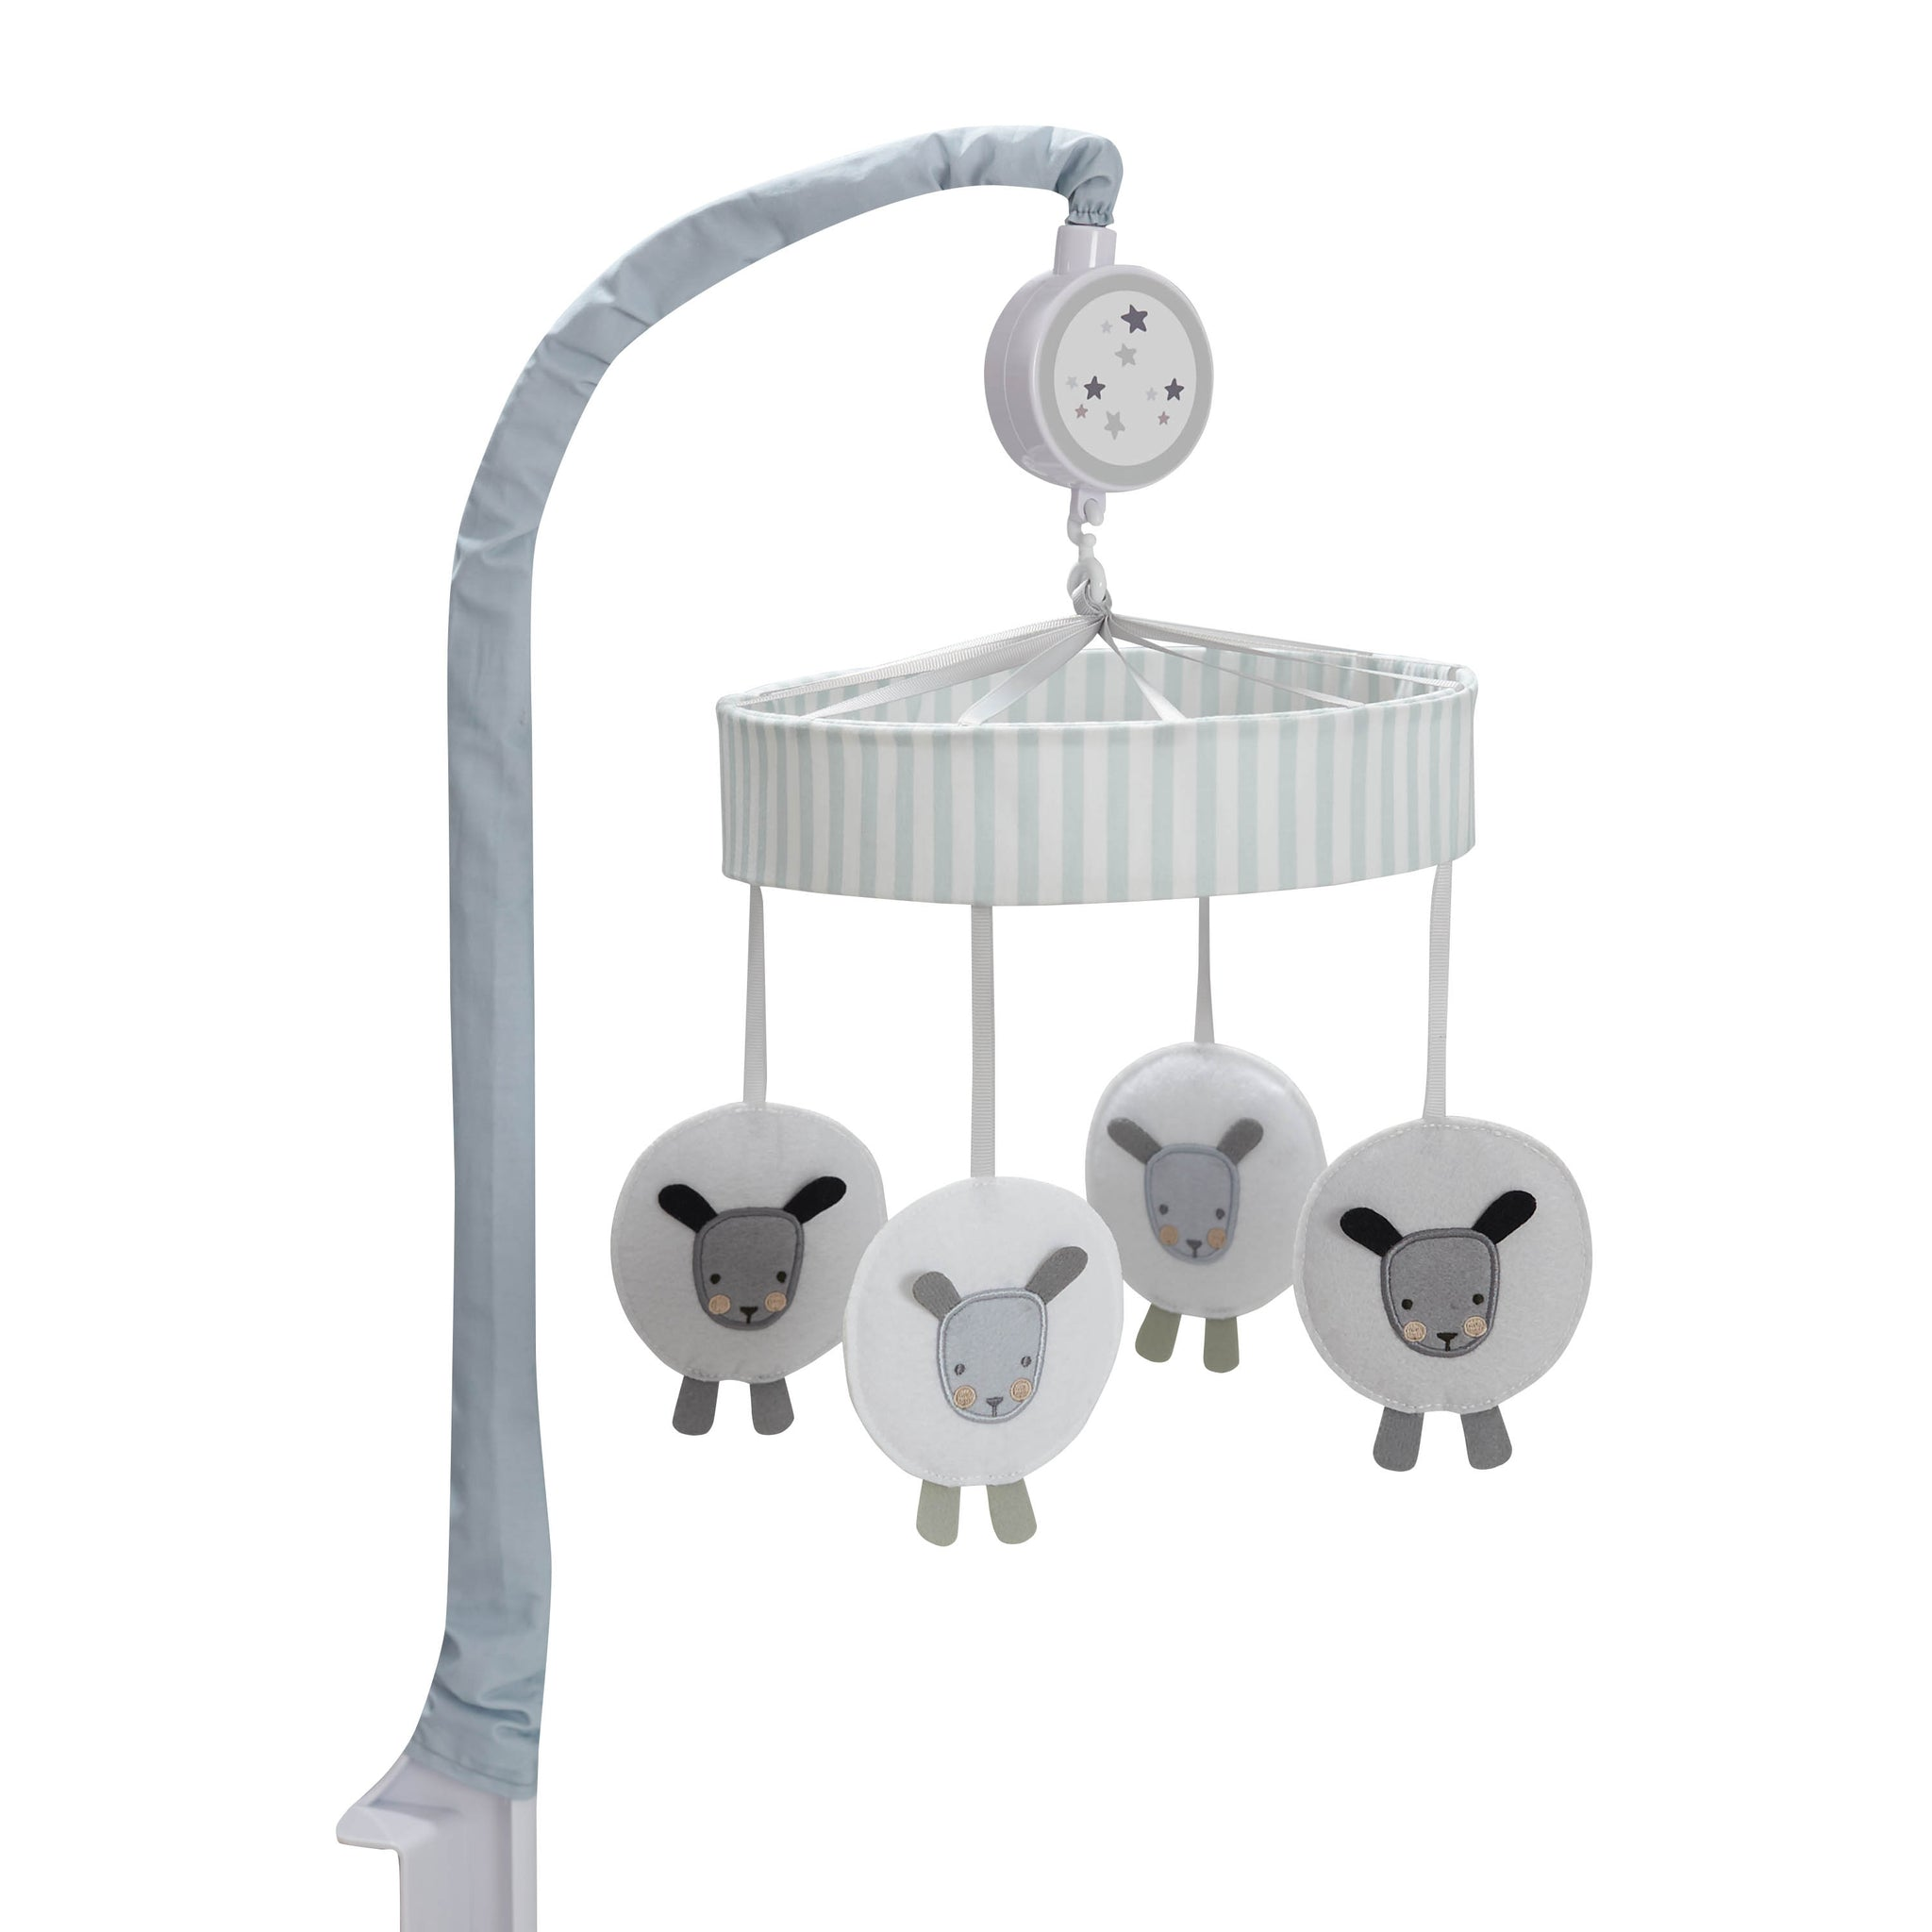 Baby Neutral Counting Sheep Musical Mobile-Gerber Childrenswear Wholesale